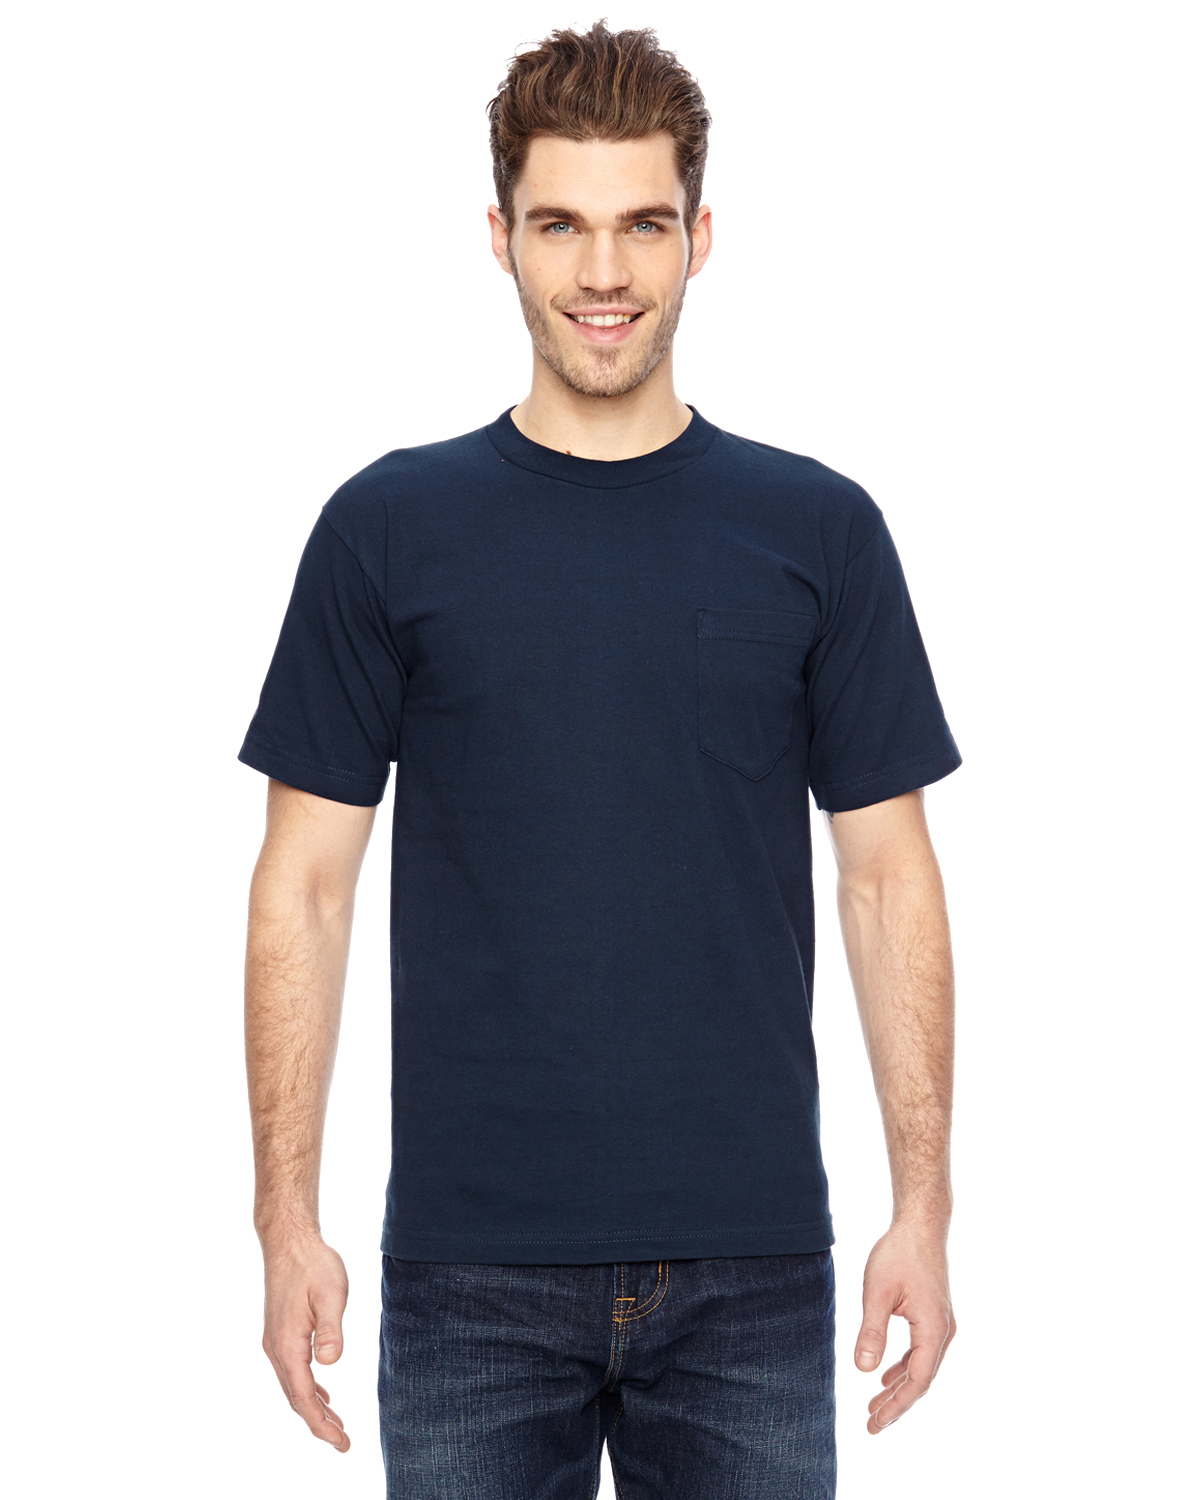 Bayside 7100 Short Sleeve T-Shirt with a Pocket